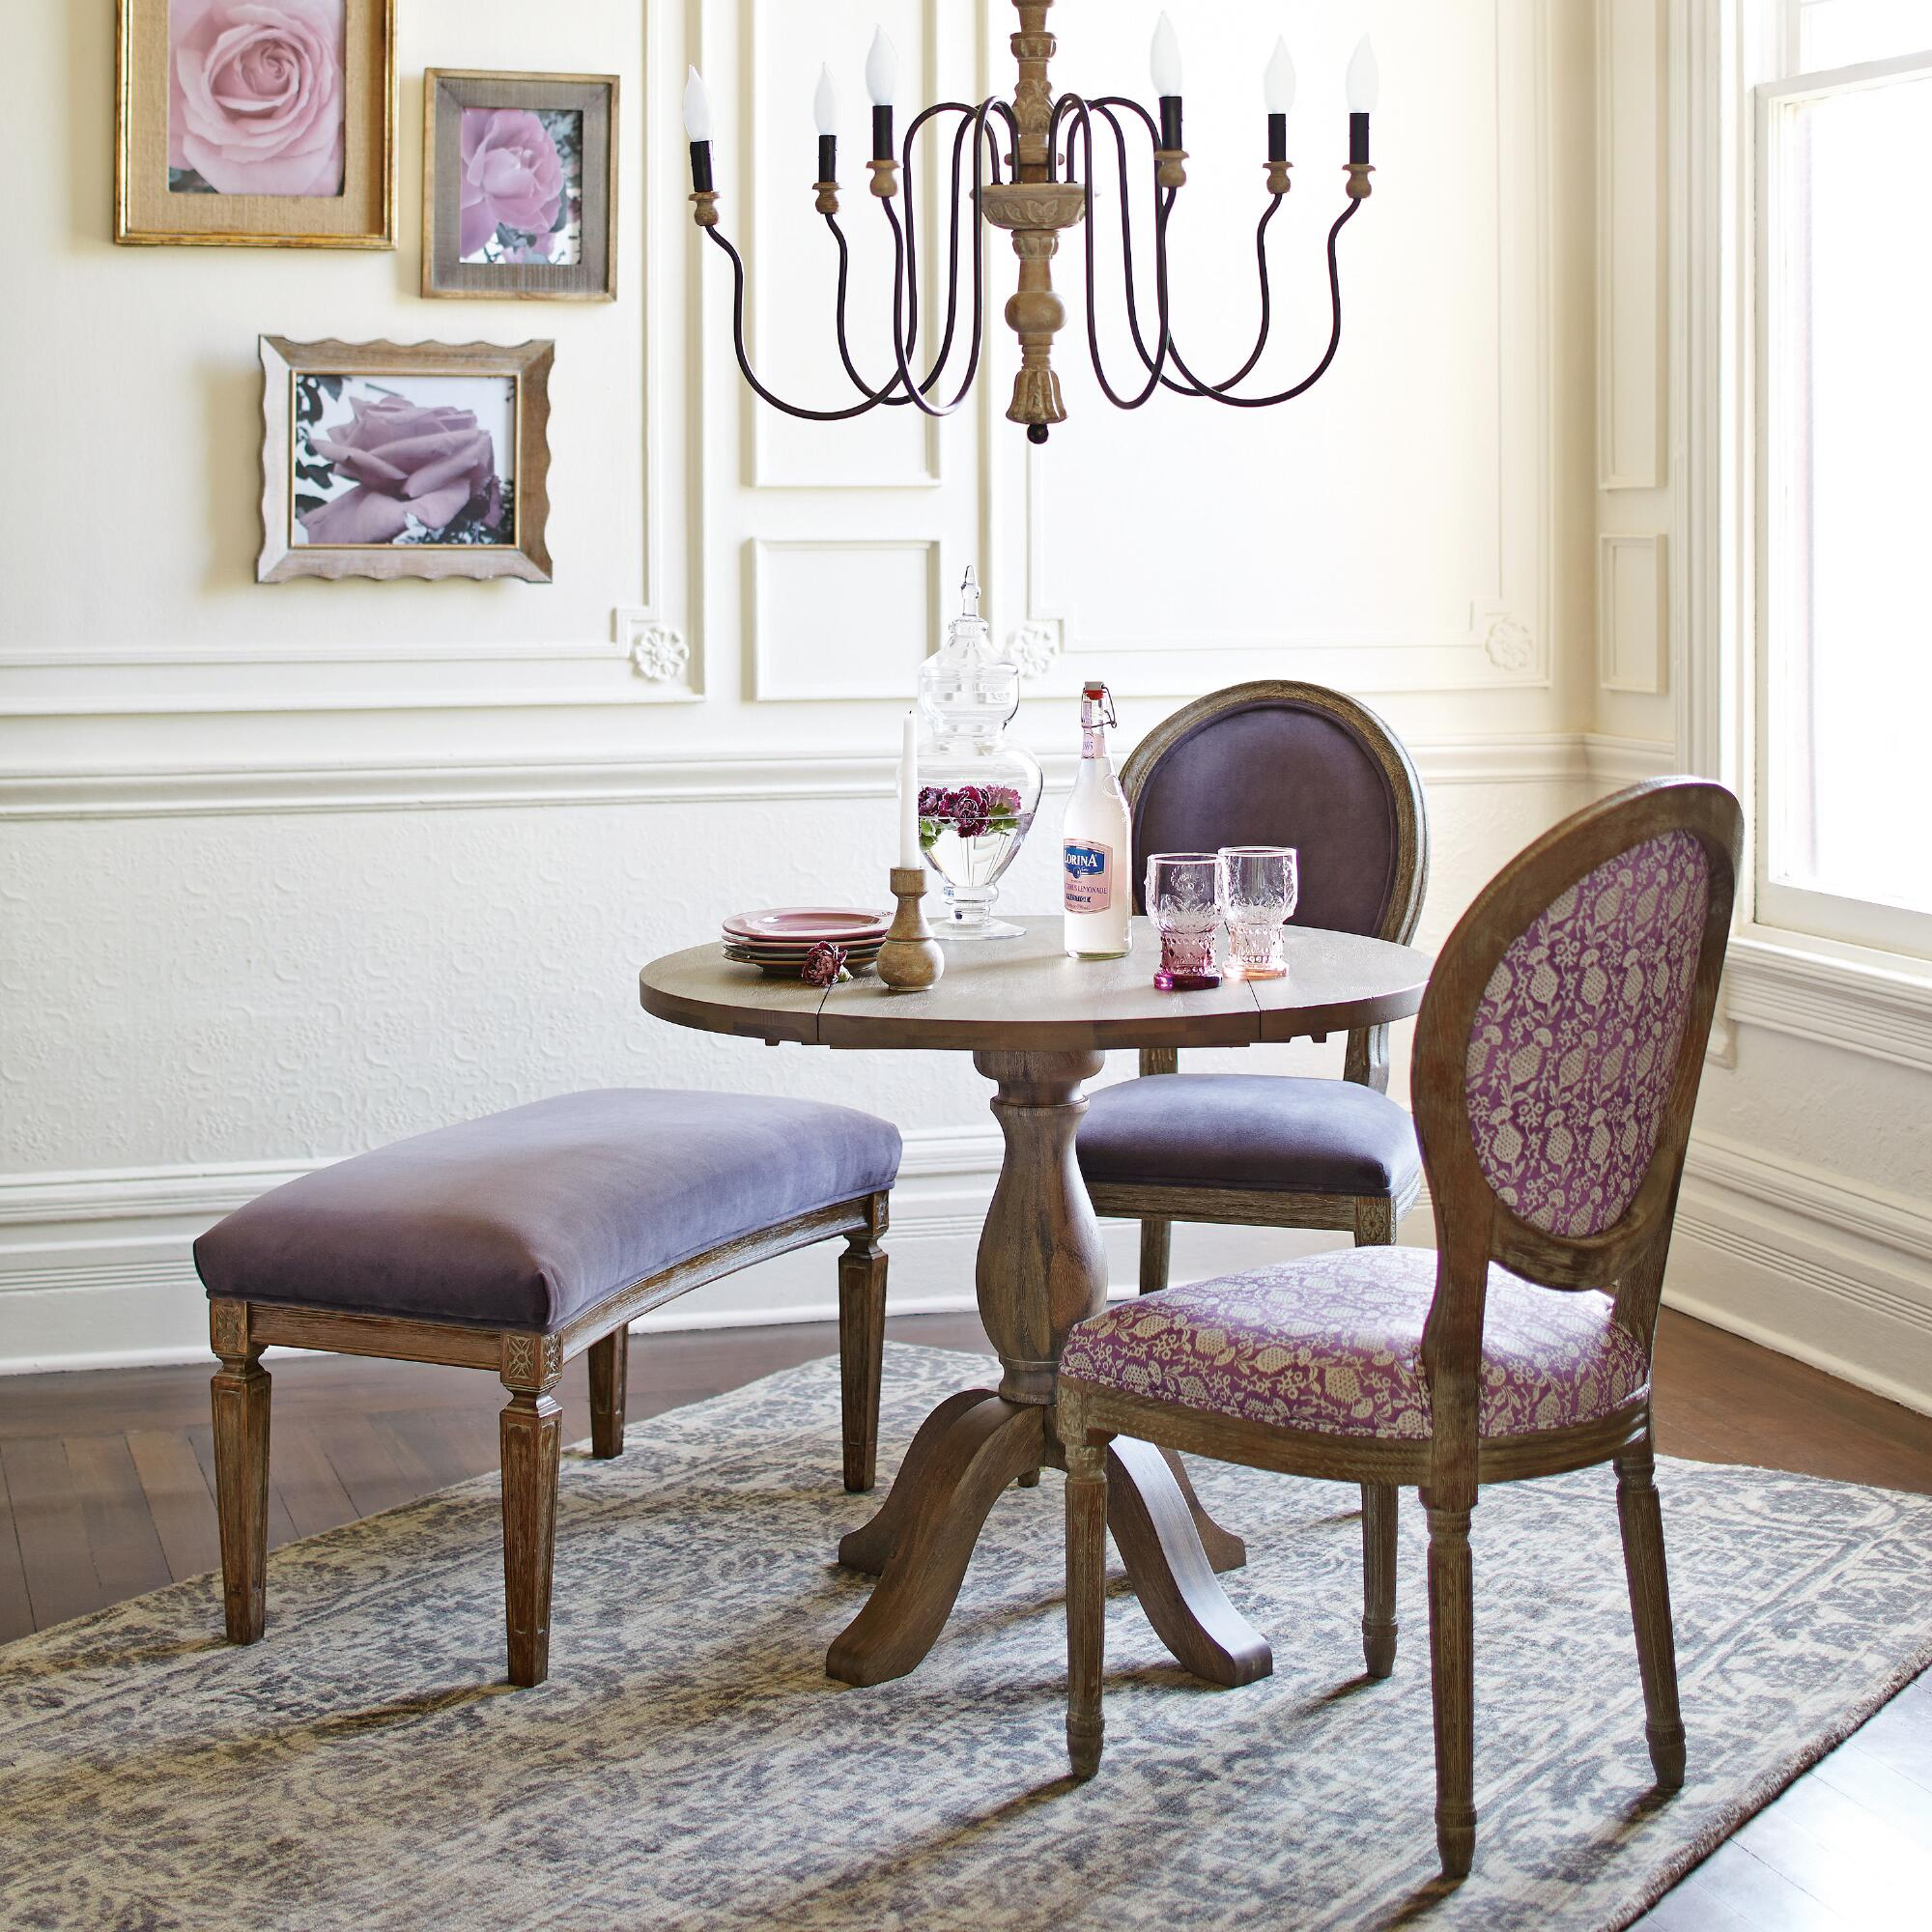 World Market Dining Room Chairs World Market Dining Room Chairs – World Market Dining Room Chairs